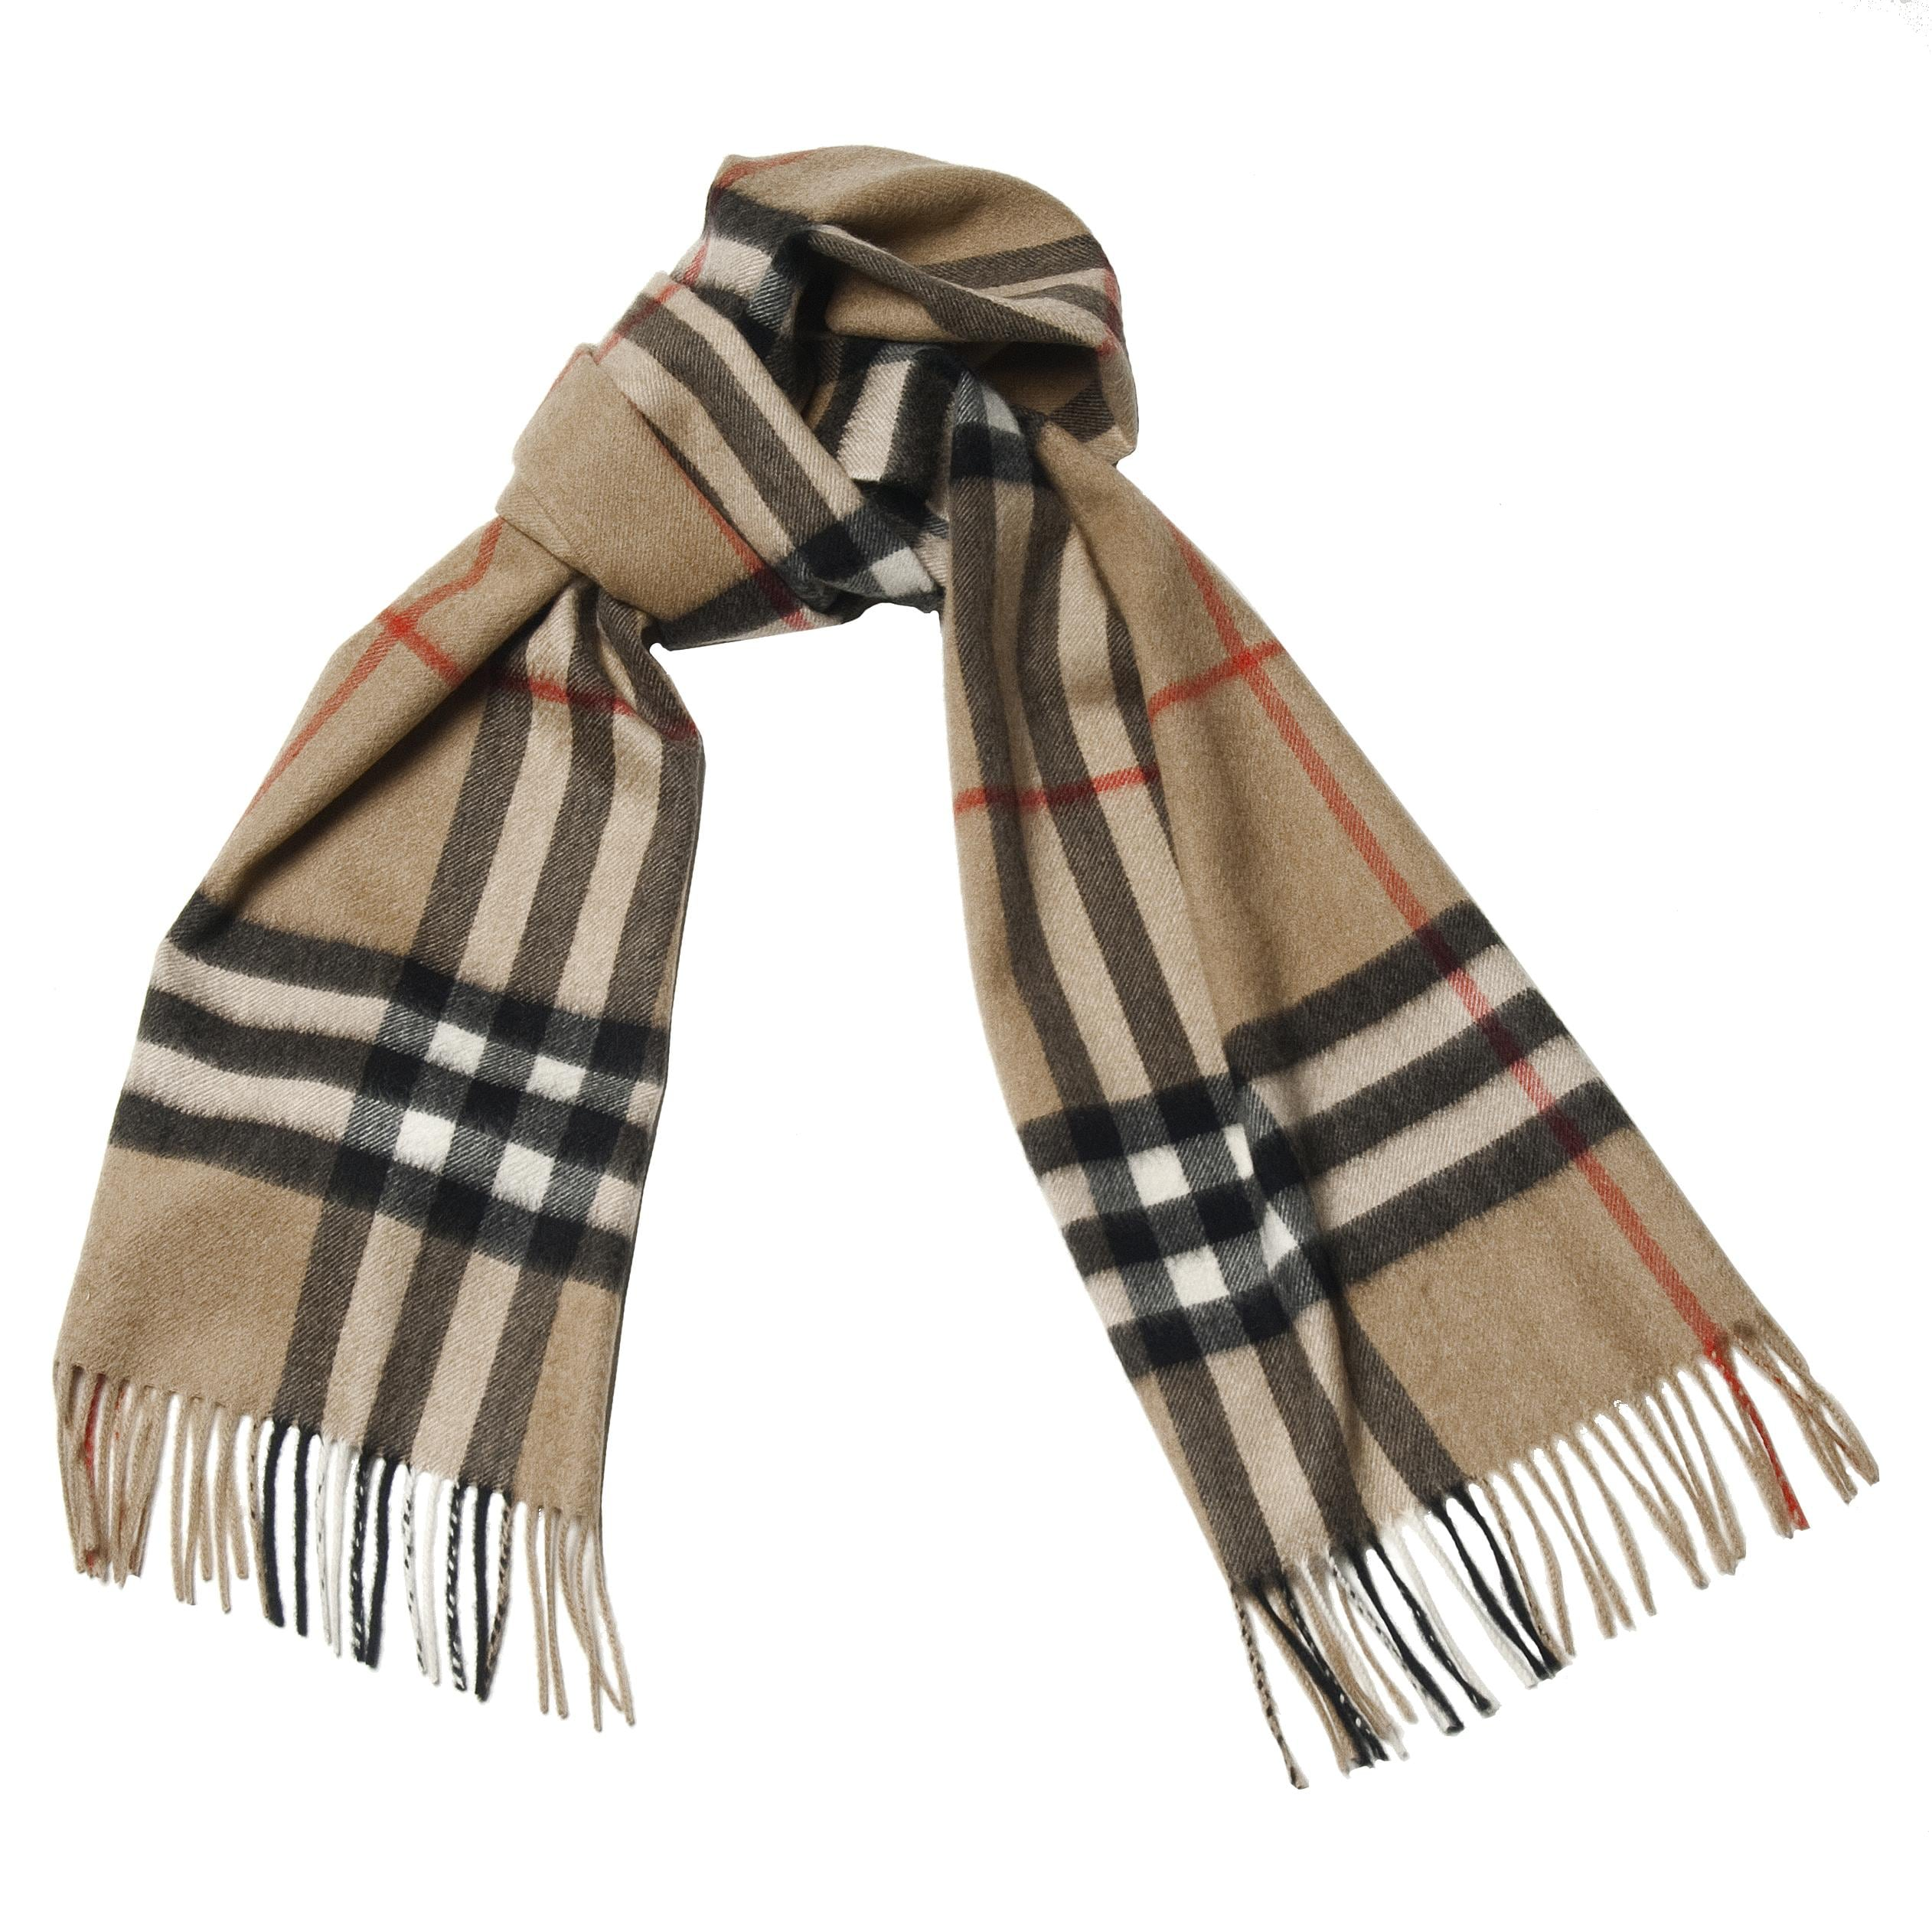 burberry scarf outlet sols  Burberry Plaid Camel Cashmere Scarf